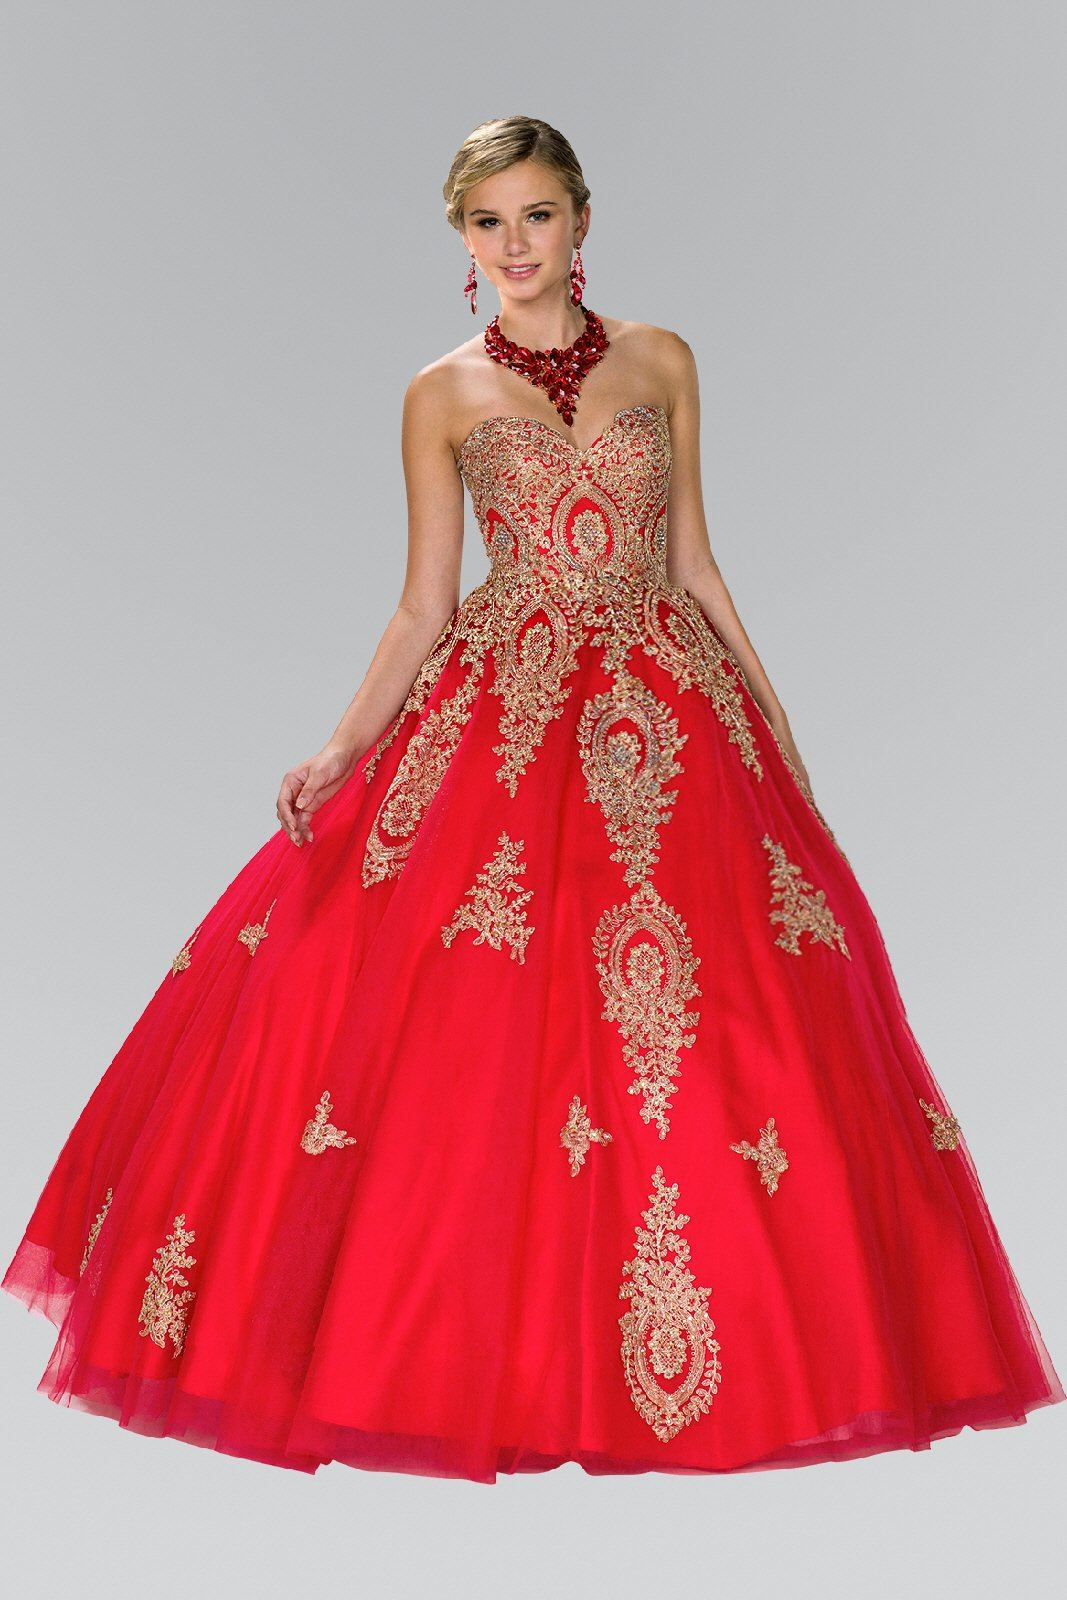 Strapless ball gown prom dress gls 2379 – Simply Fab Dress